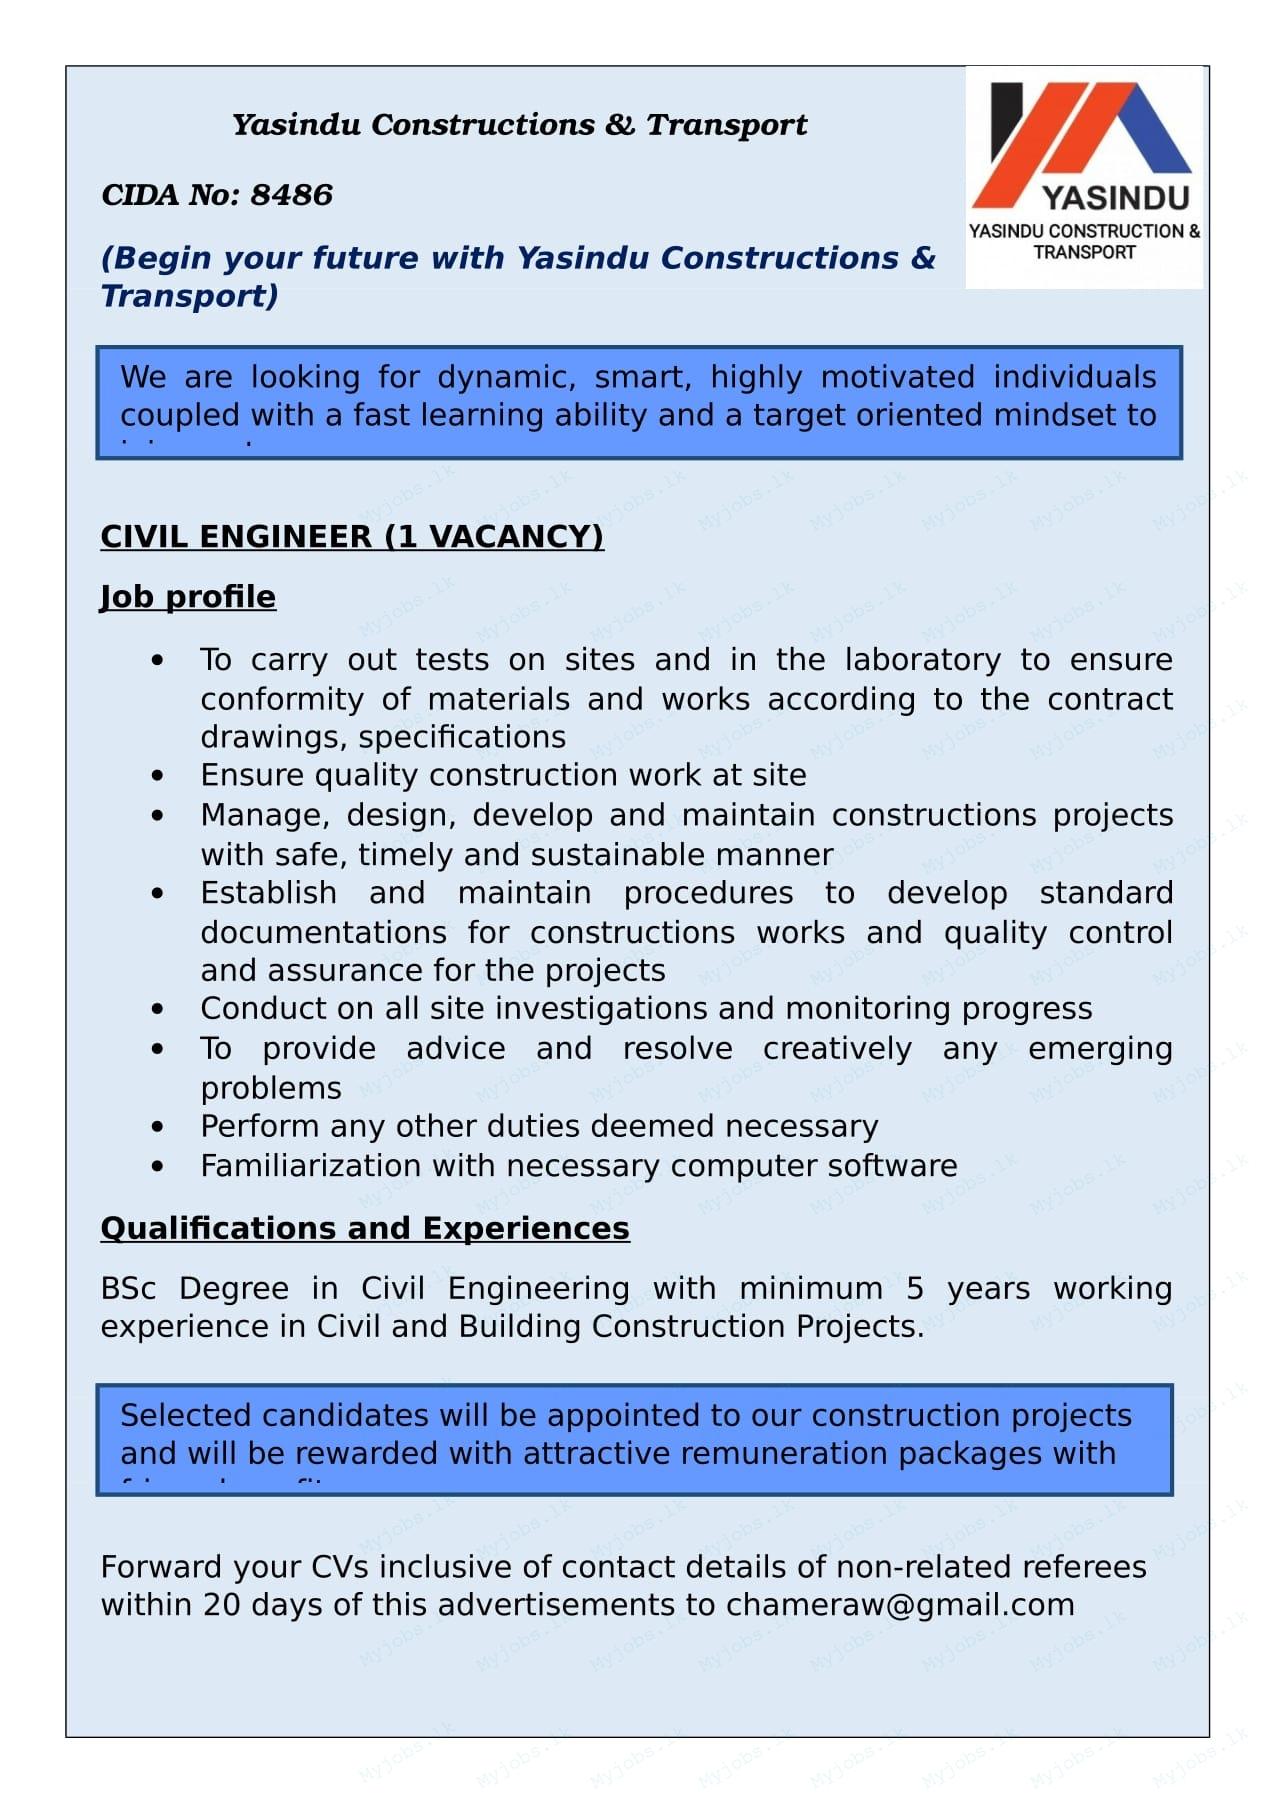 cv engineer job